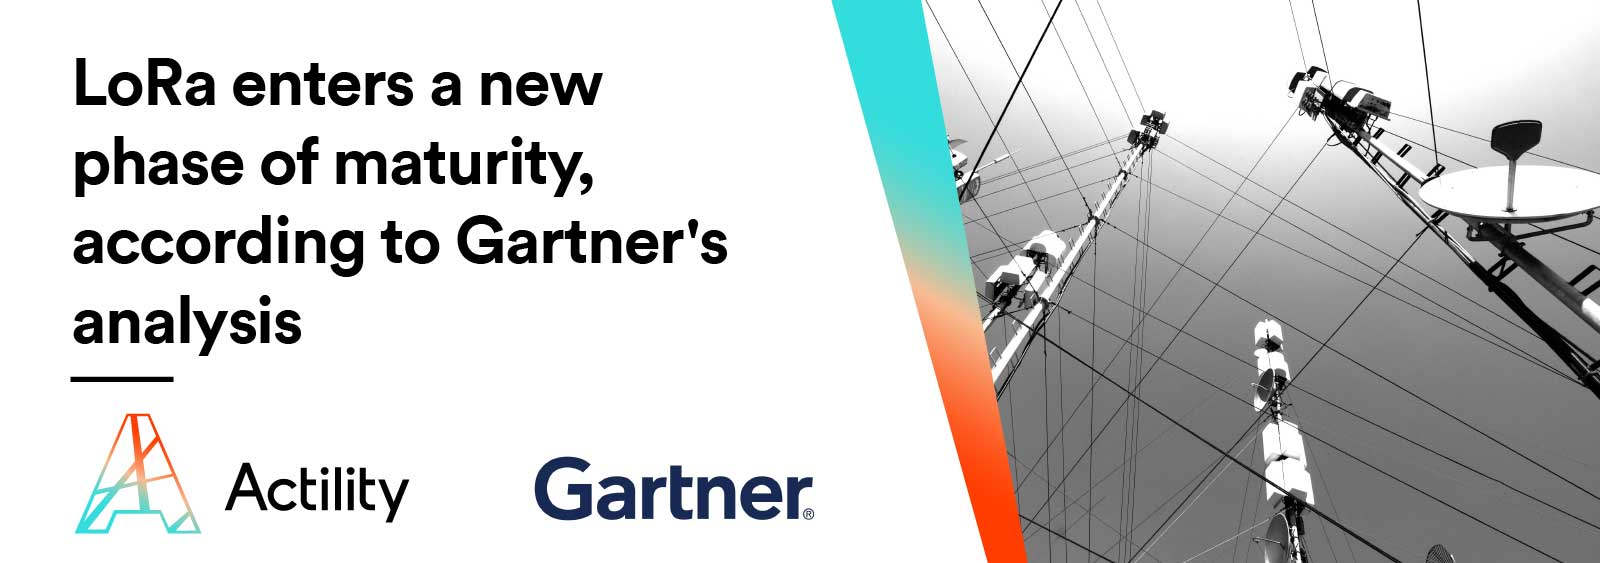 Image including text: LoRa enters a new phase of maturity, according to Gartner's analysis